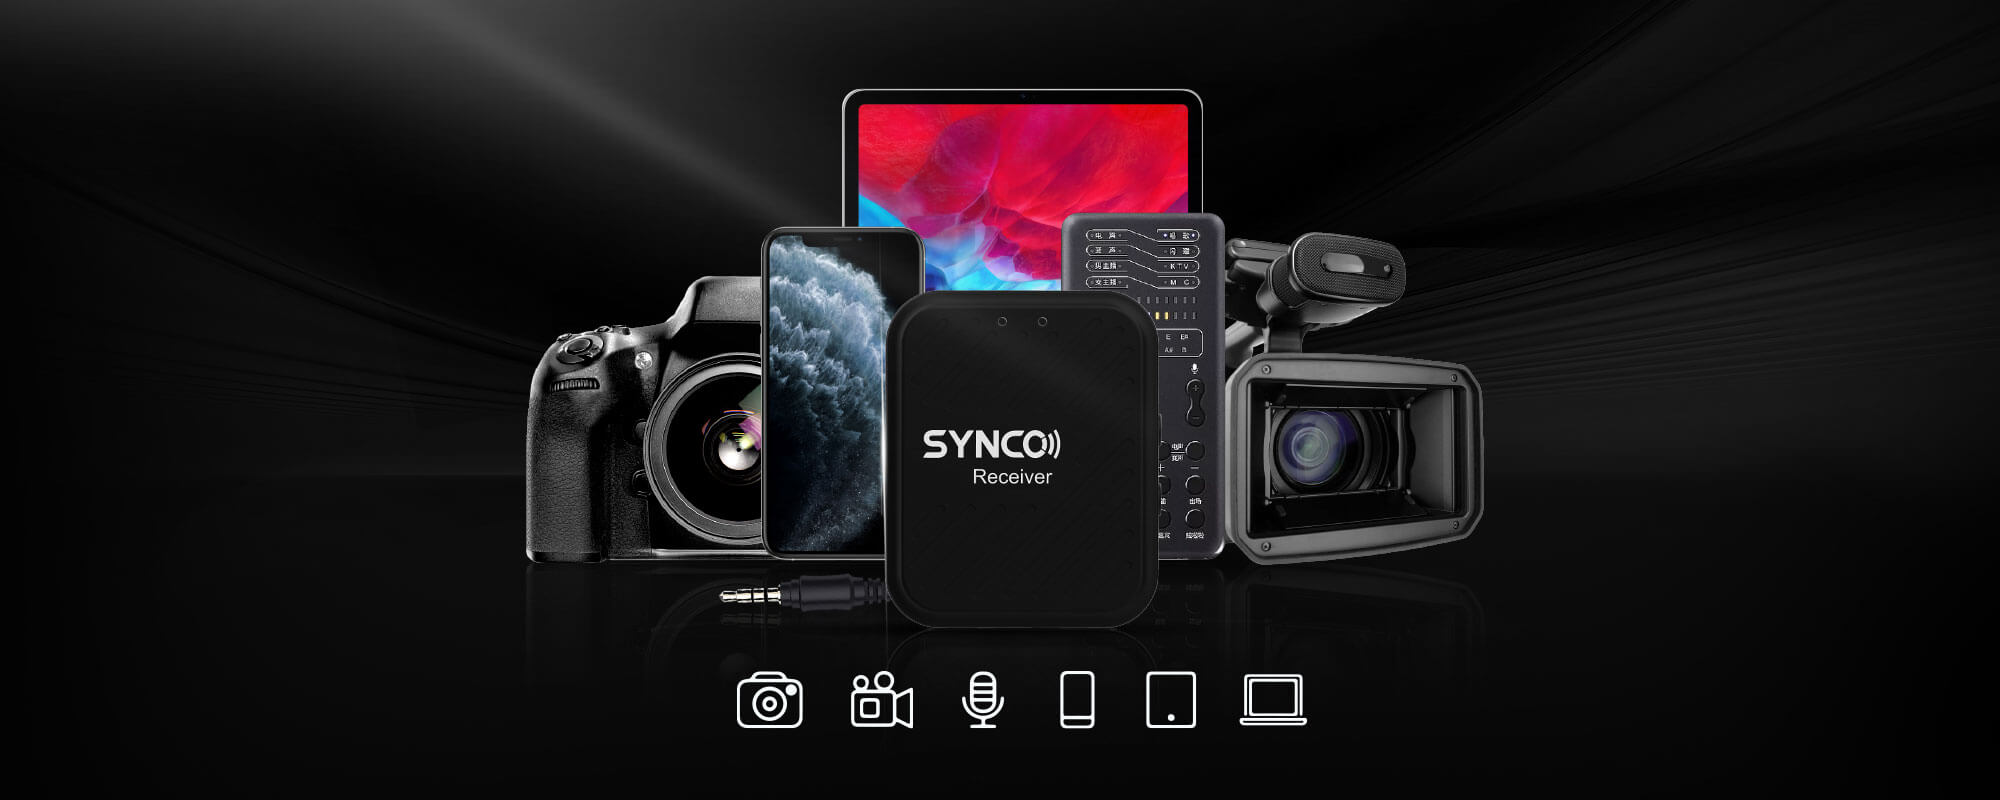 SYNCO G1(A1) Small Device with Strong Compatibility